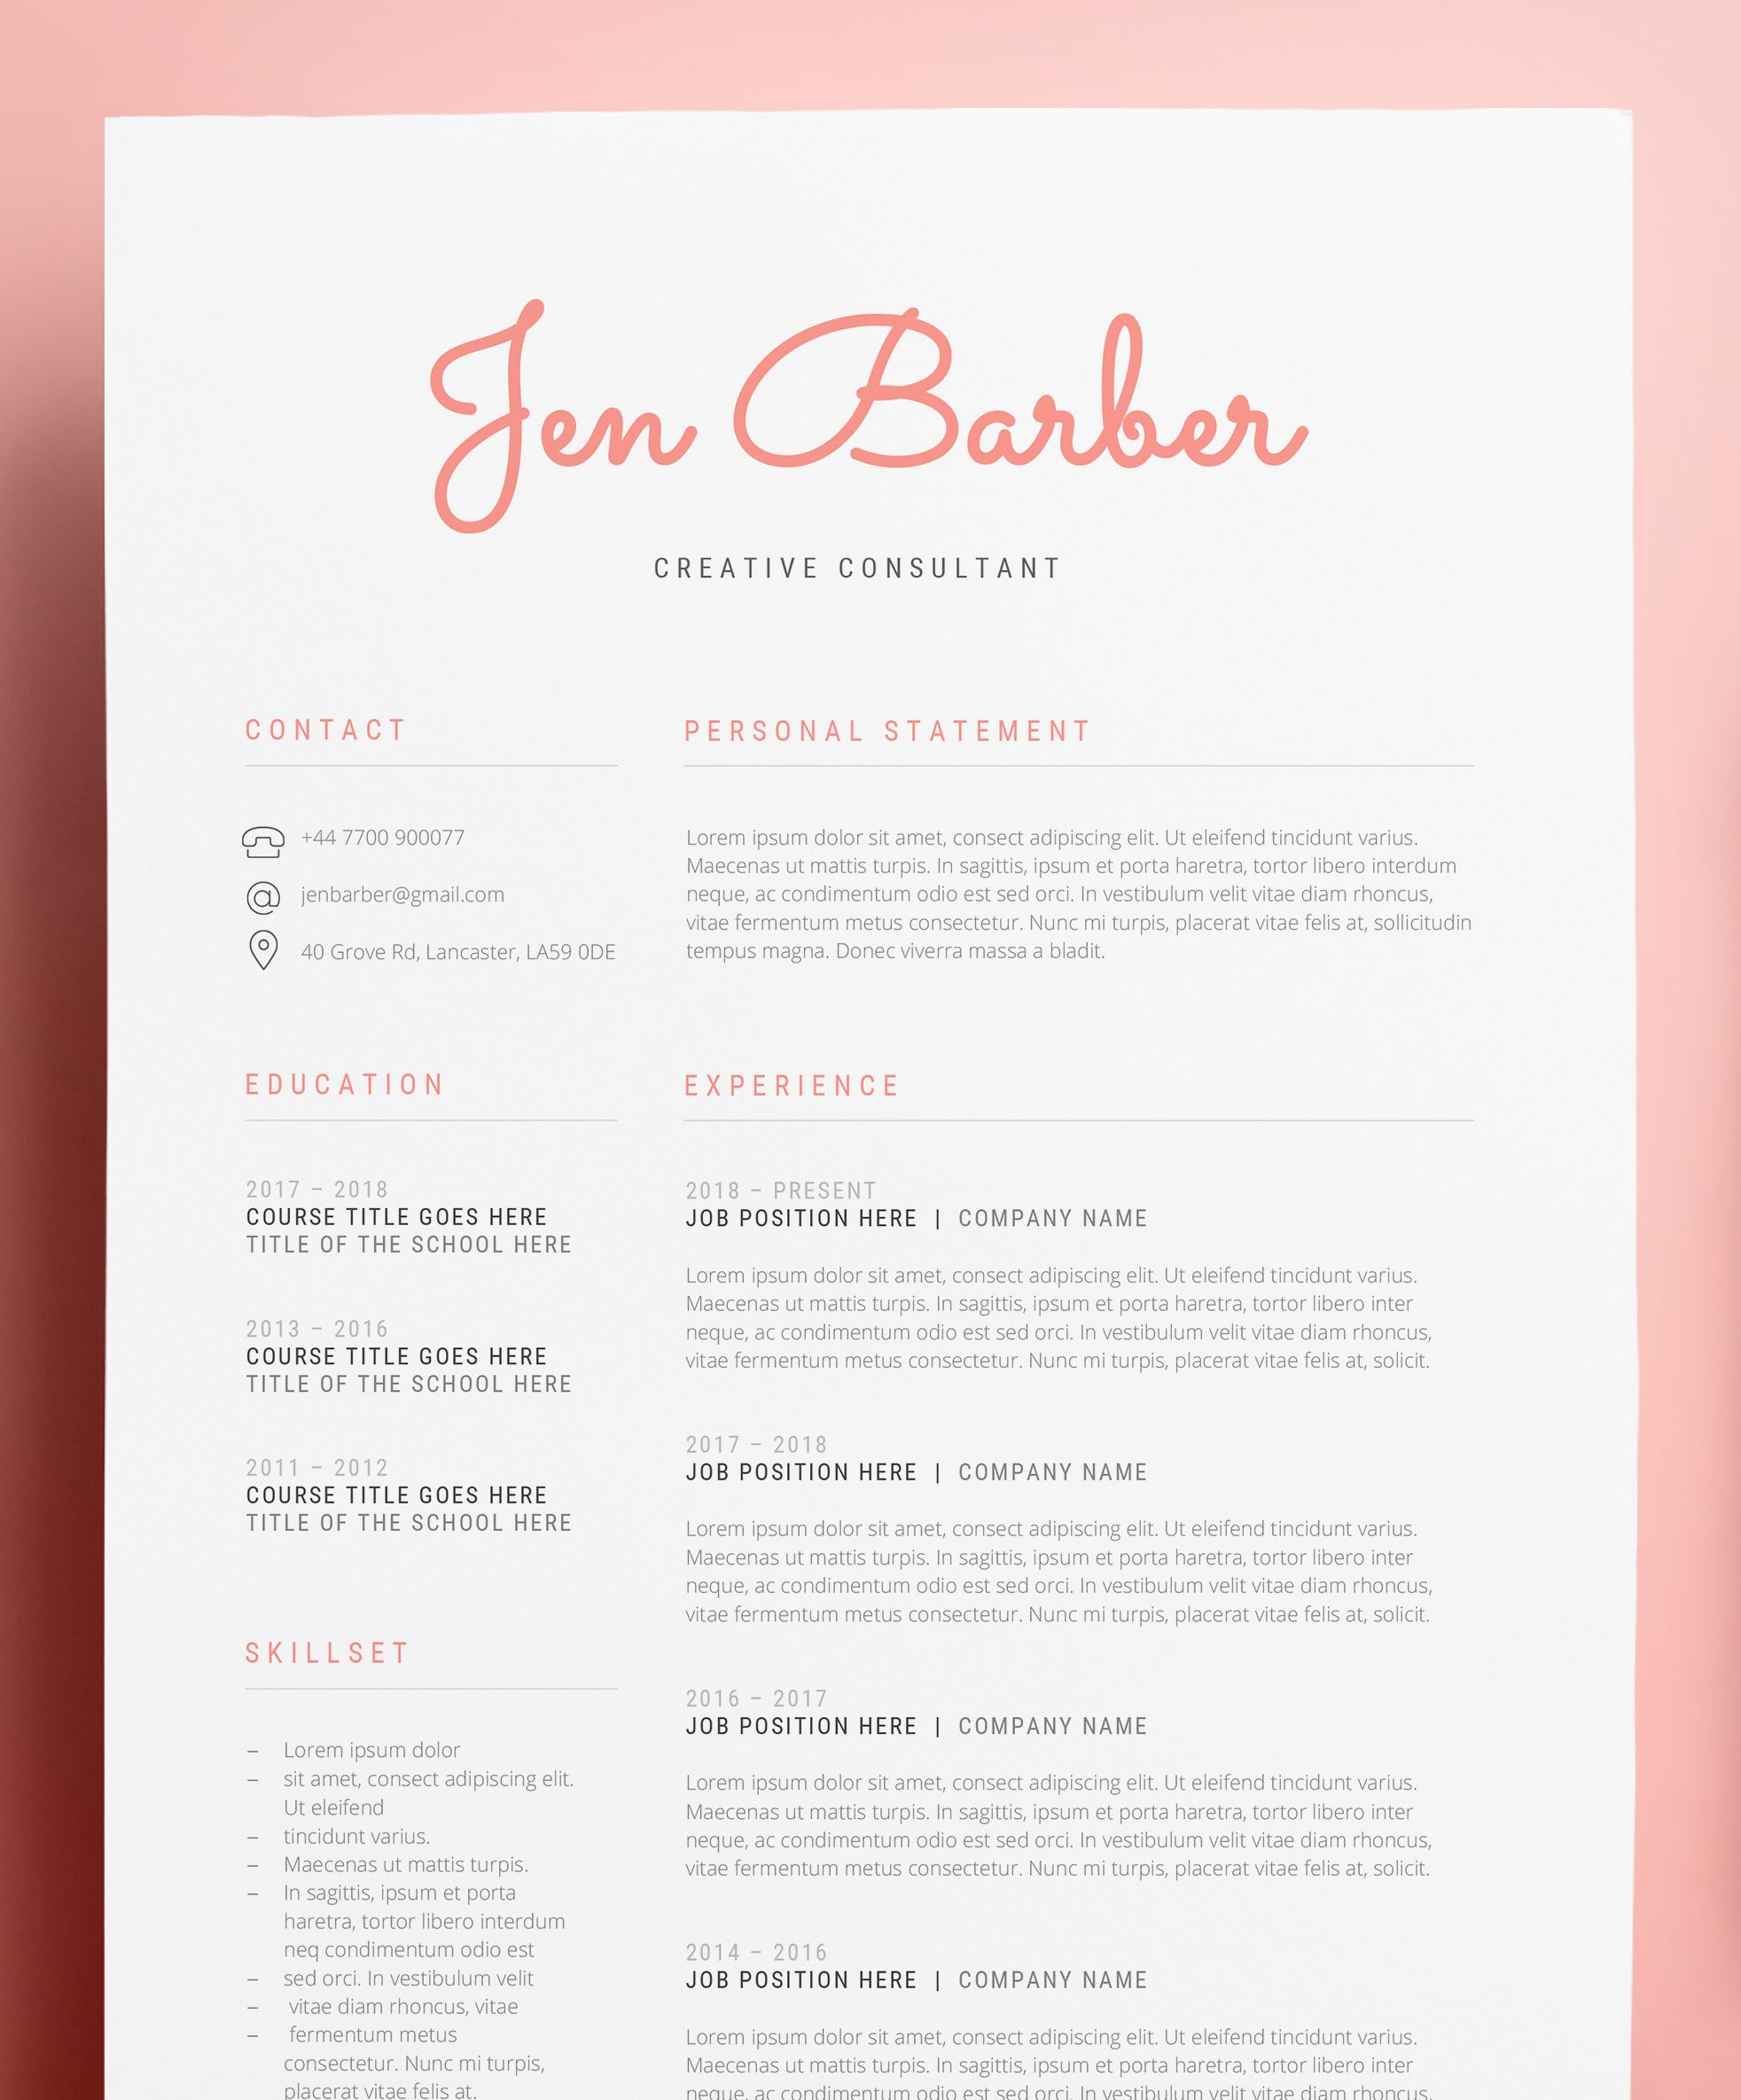 Creative Consultant Resume Cv Word Design Template Download Now Get 15 Via Our Etsy Shop In 2021 Cv Words Resume Template Cv Template